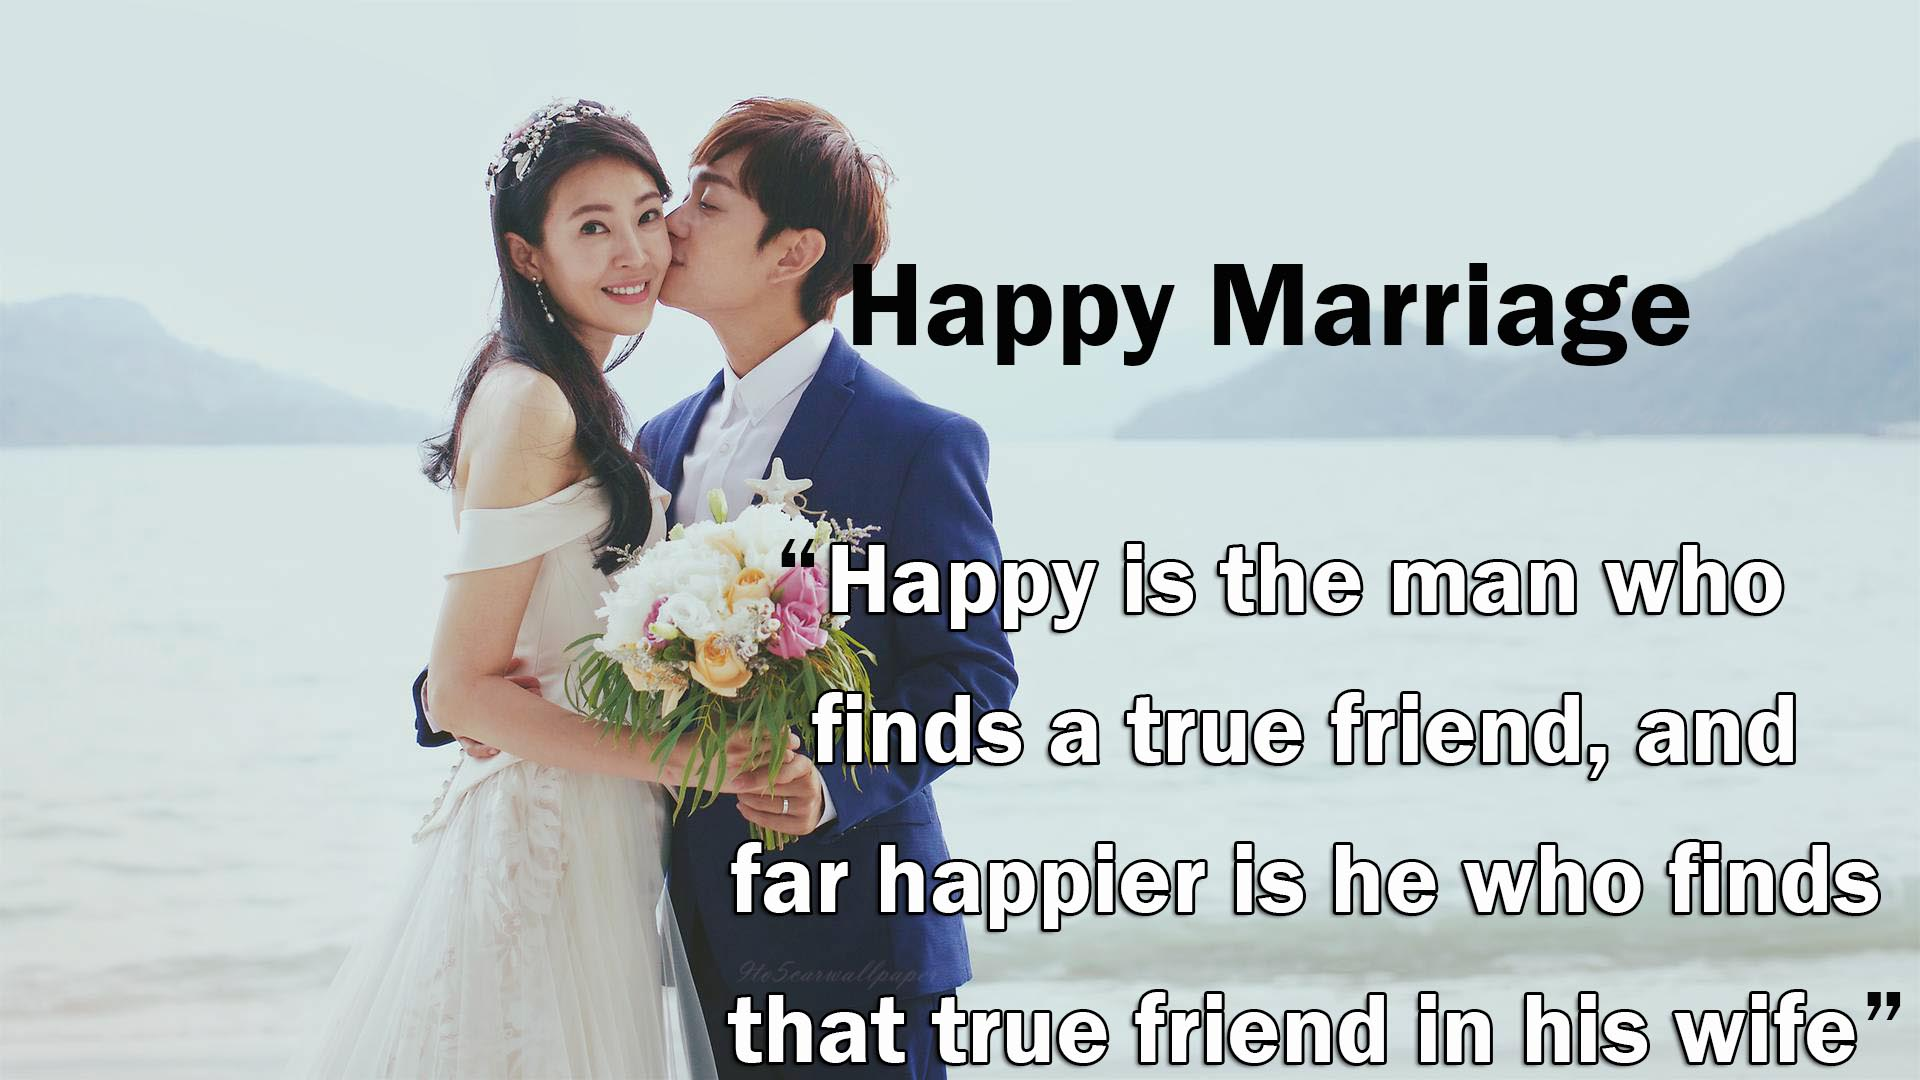 happy-marriage-wedding-wishes-quotes-2017